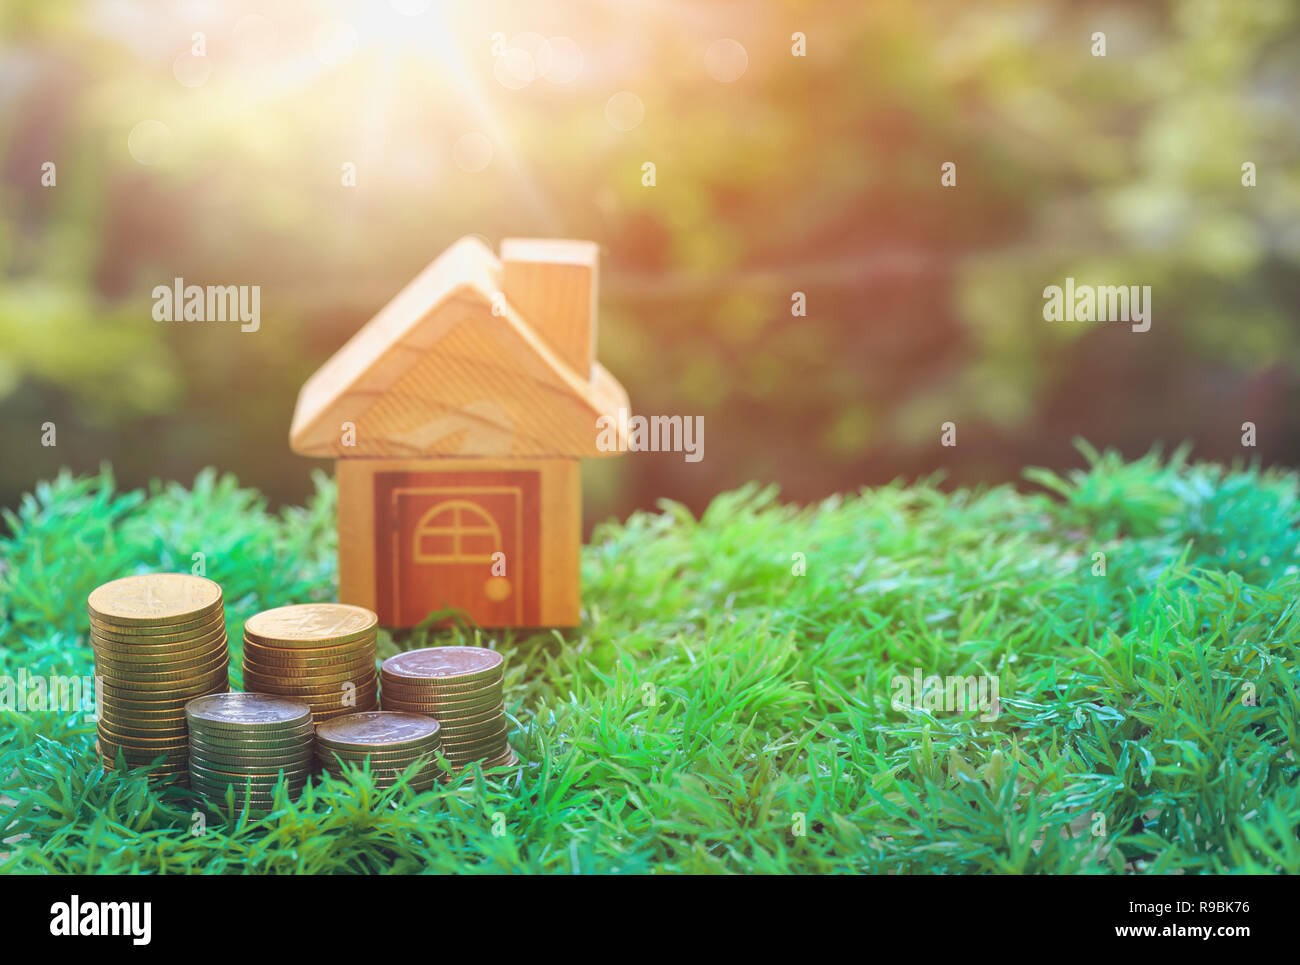 Coins and mock houses are placed in real estate sale or property investment concept, Buying new home for family Stock Photo